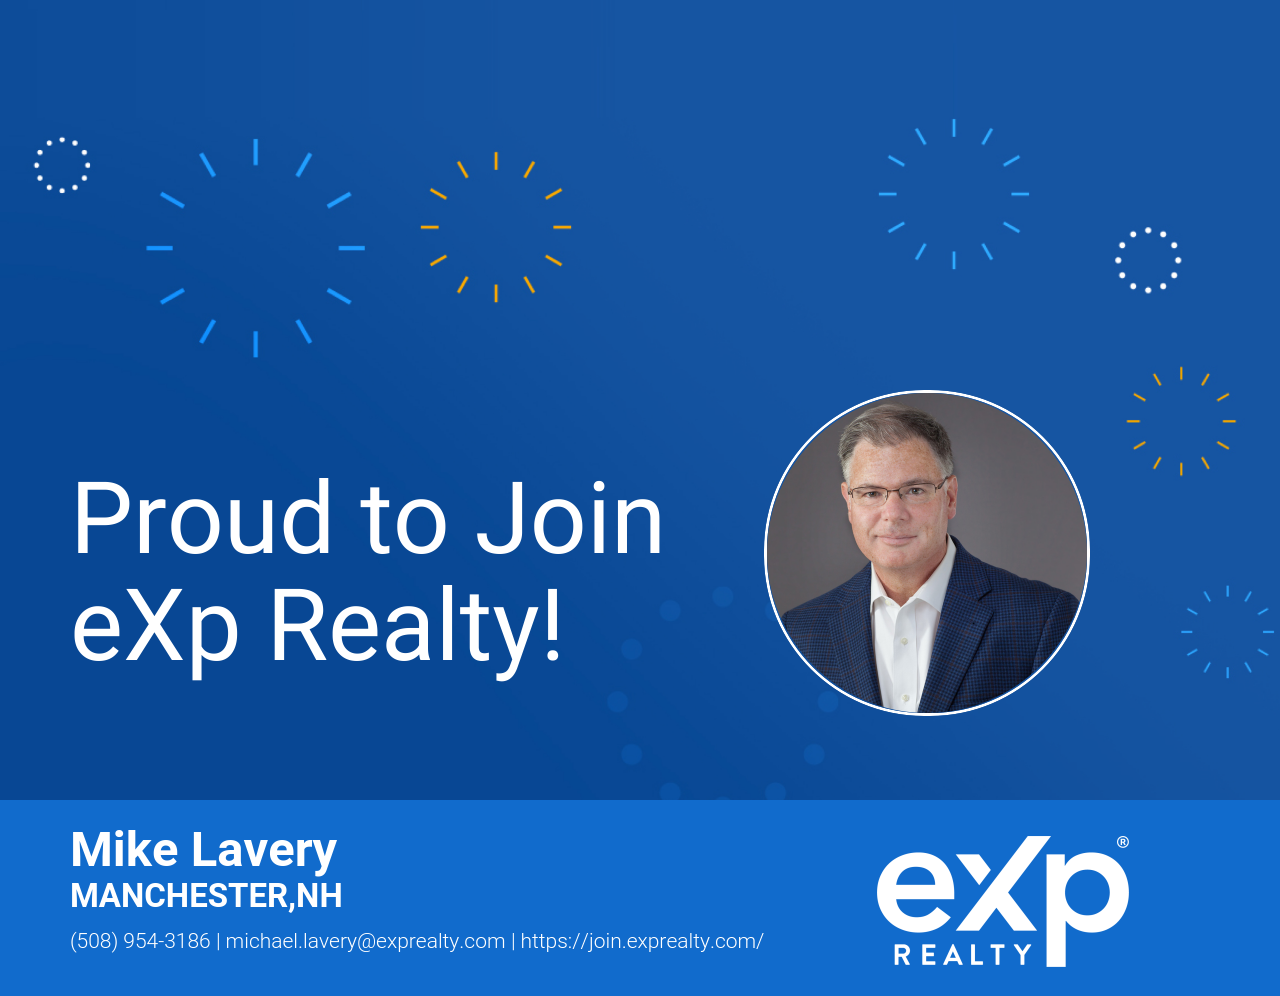 eXp Realty Welcomes Mike Lavery!